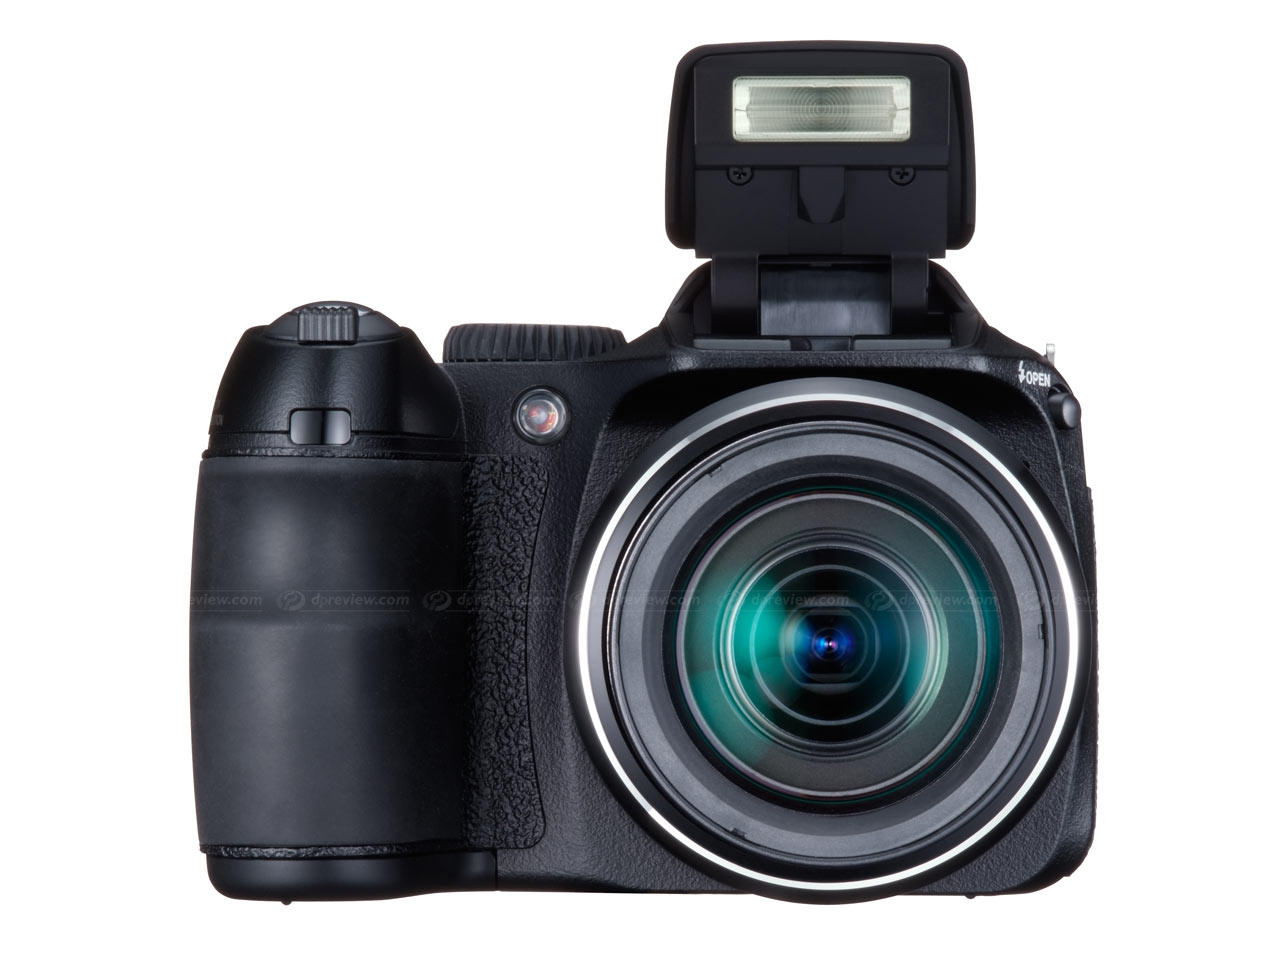 fujifilm launches its first hd ready camera digital photography review rh dpreview com Fujifilm FinePix Z90 Fujifilm FinePix Z90